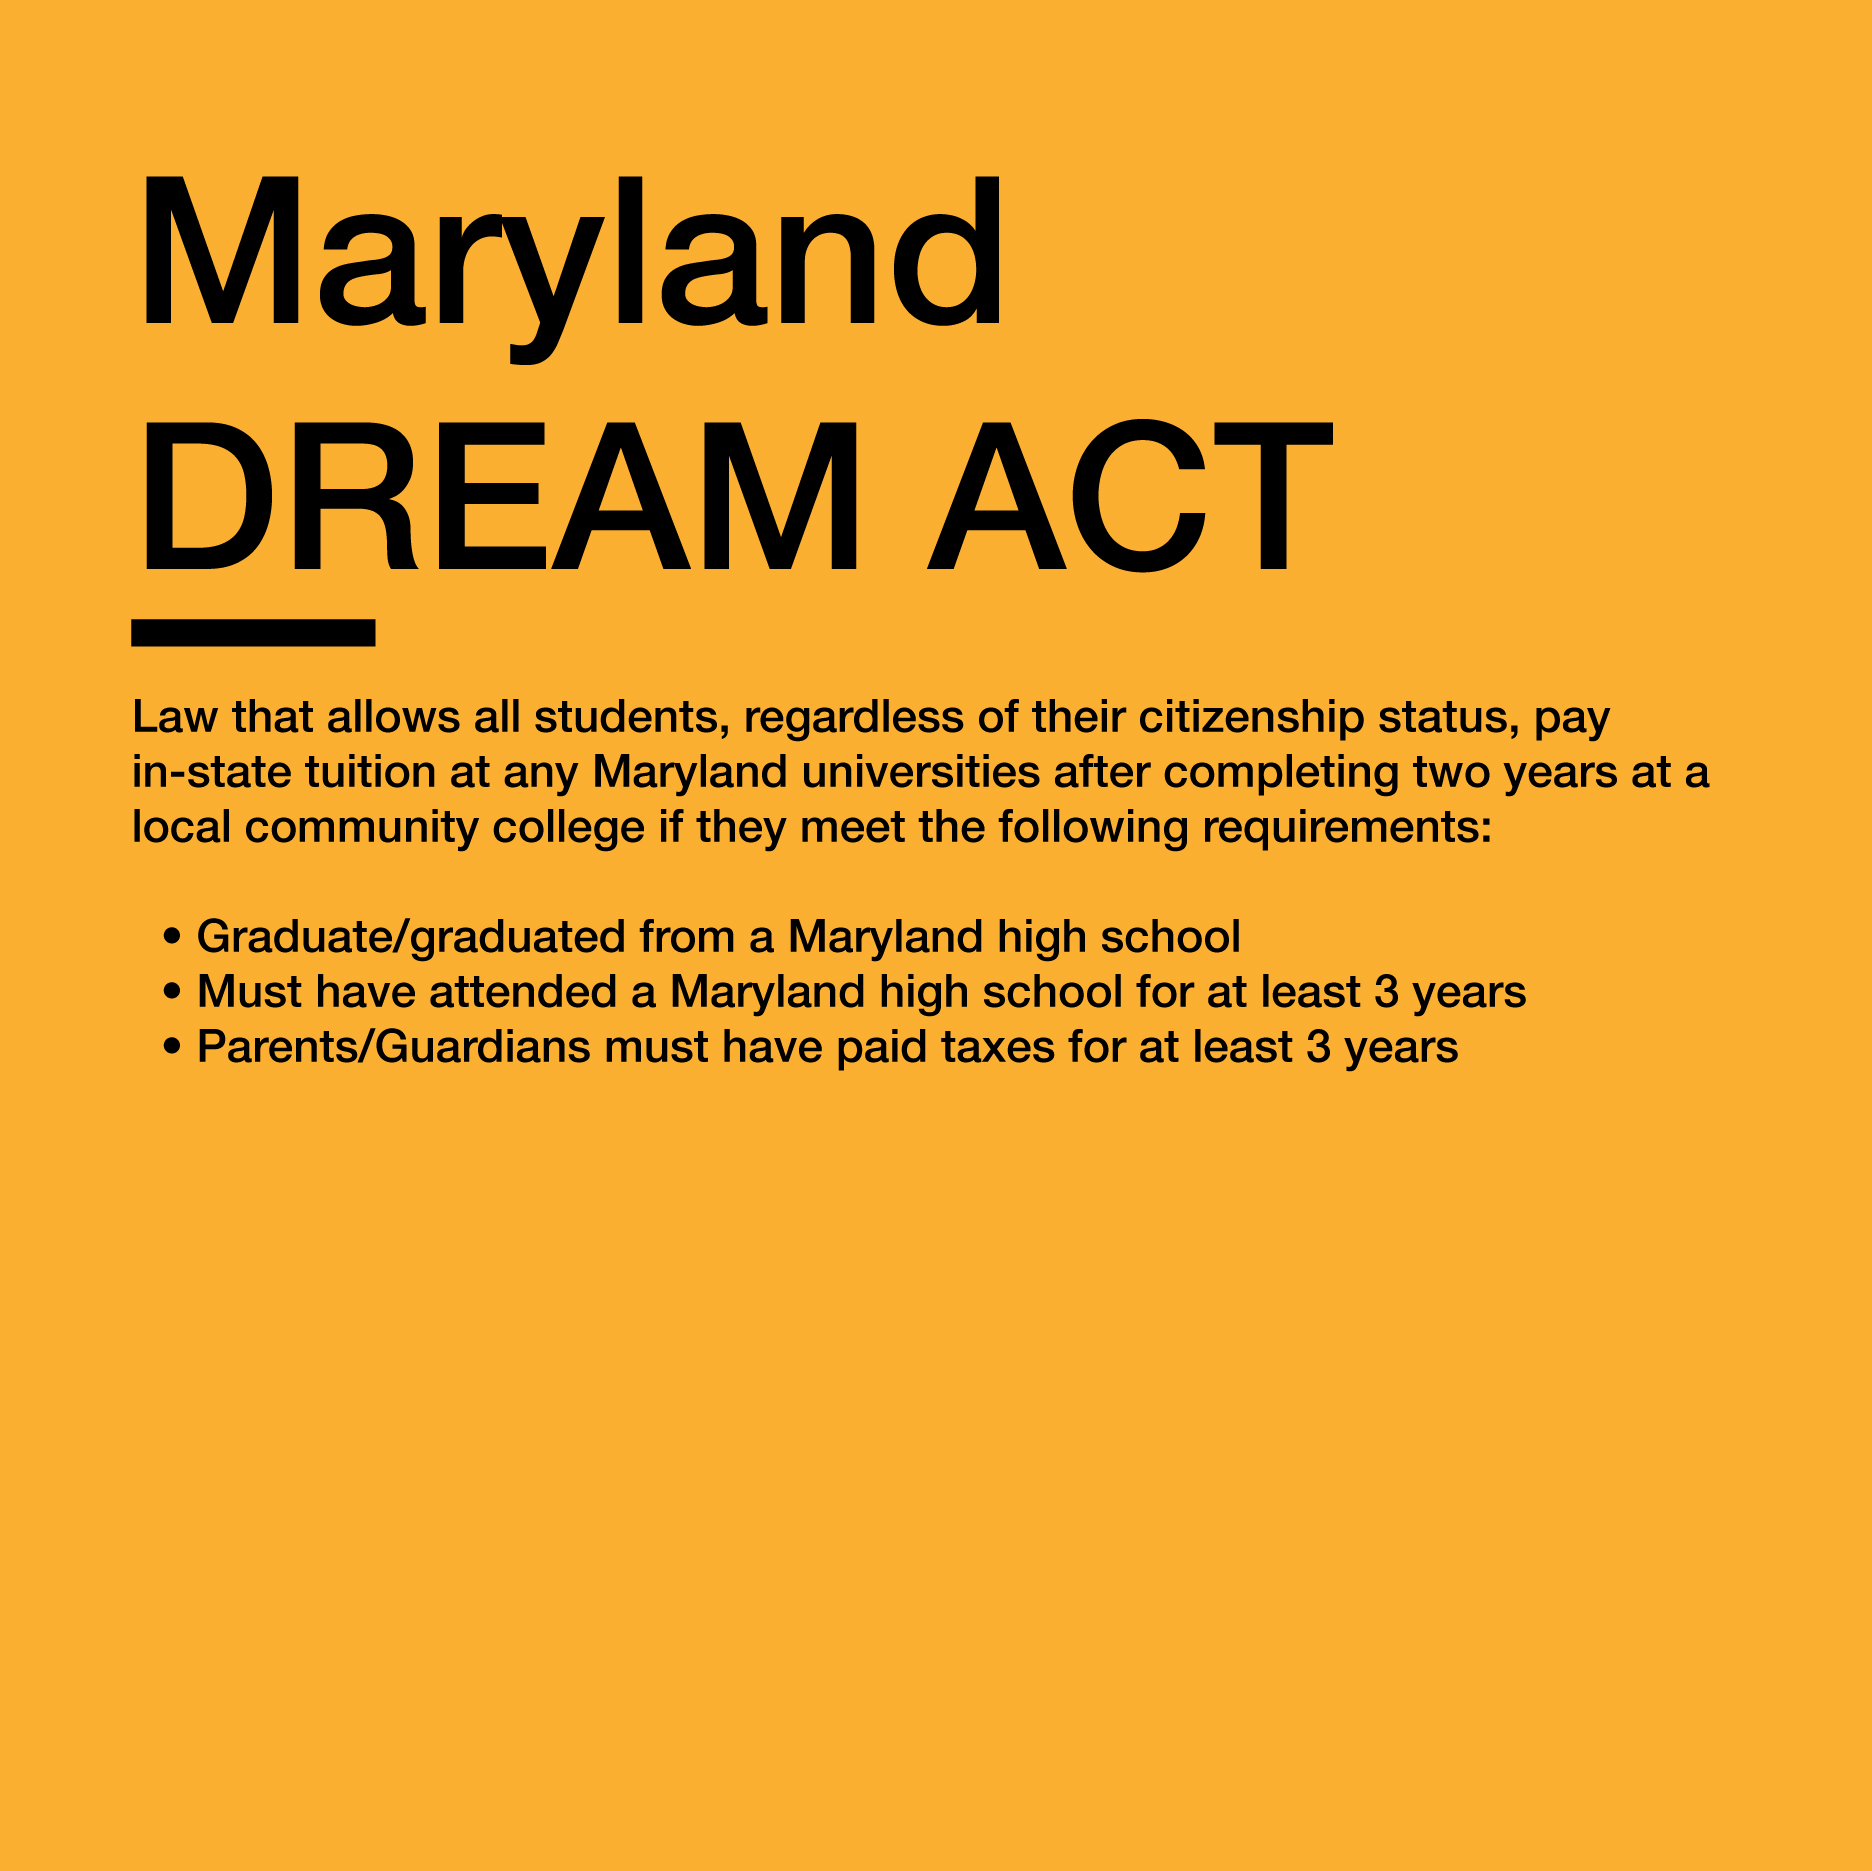 More Info   https://www.aclu-md.org/en/maryland-dream-act